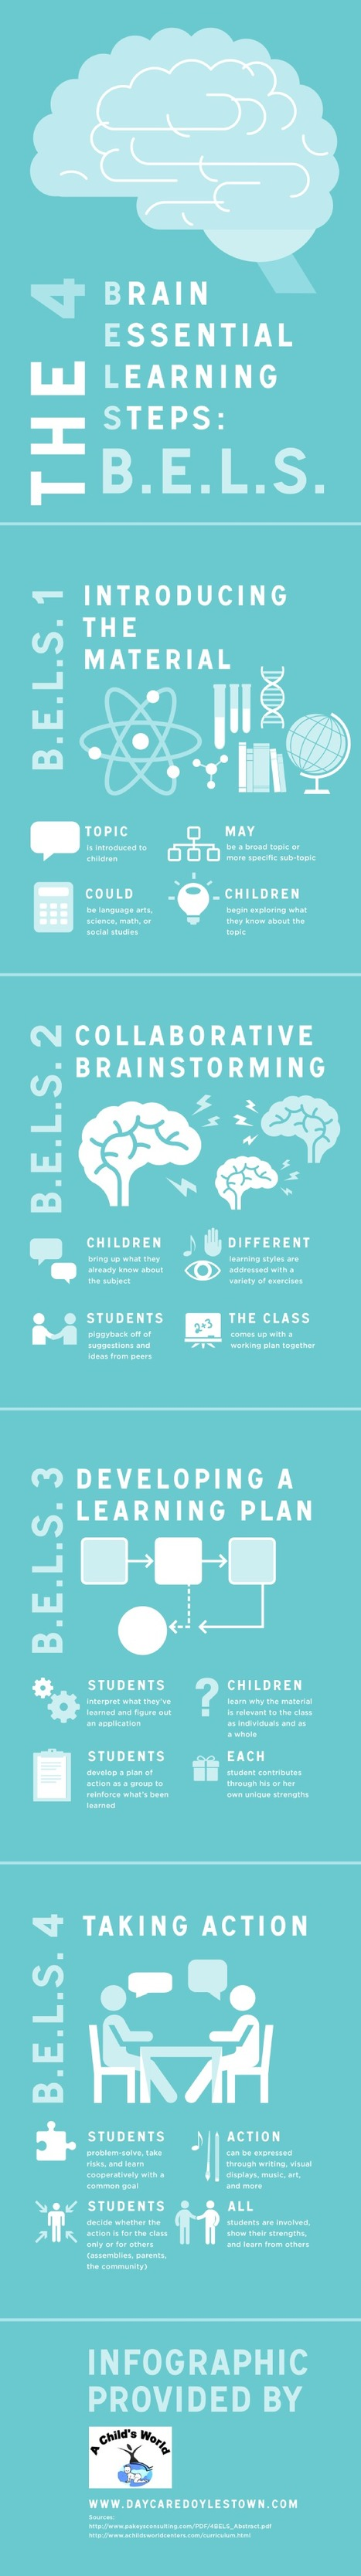 The 4 Brain Essential Learning Steps - Edudemic | Technology in Schools | Scoop.it